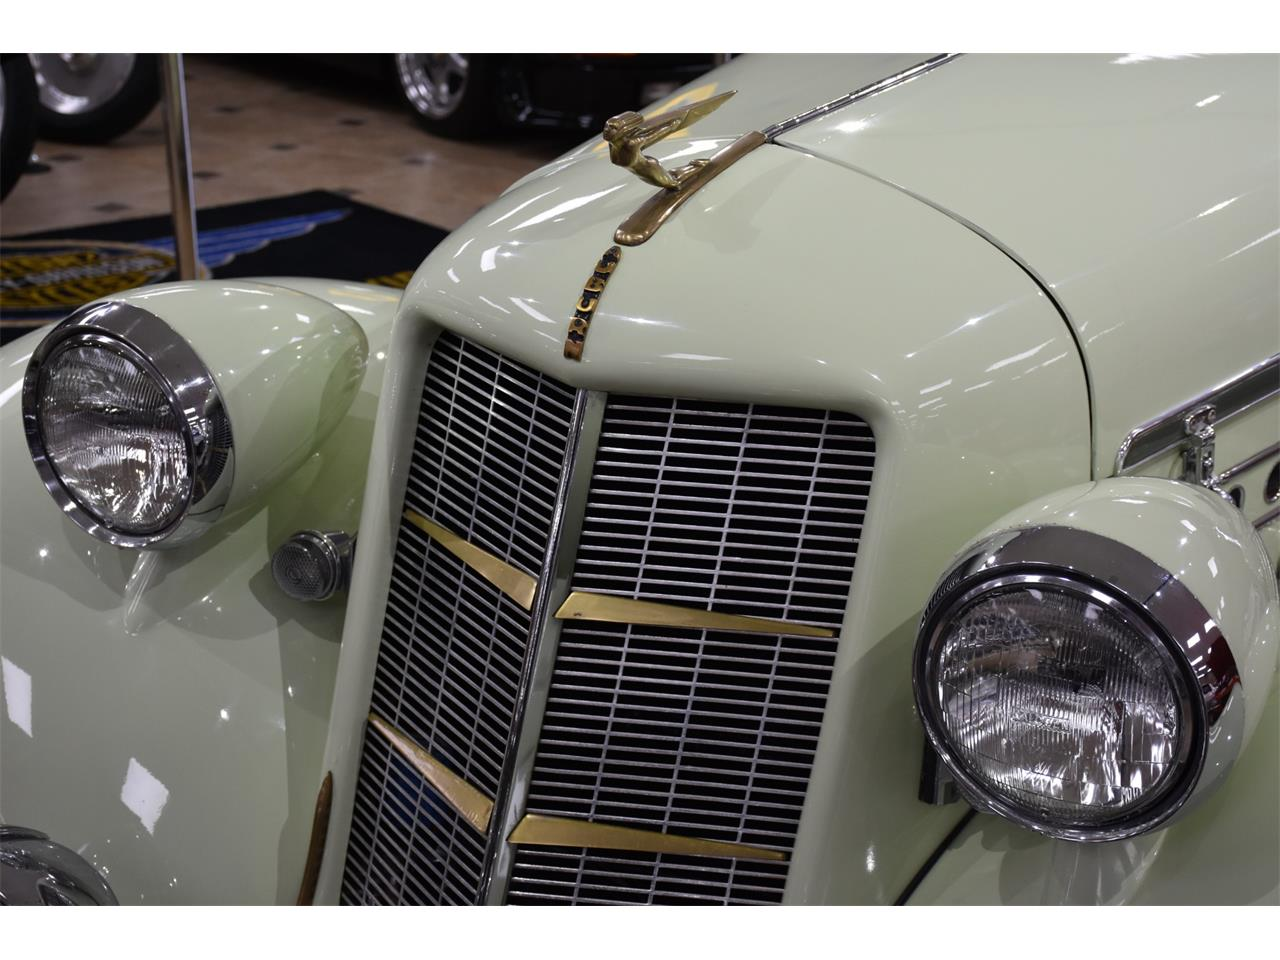 Large Picture of 1935 Auburn Boattail located in Venice Florida Auction Vehicle Offered by Ideal Classic Cars - MC9J